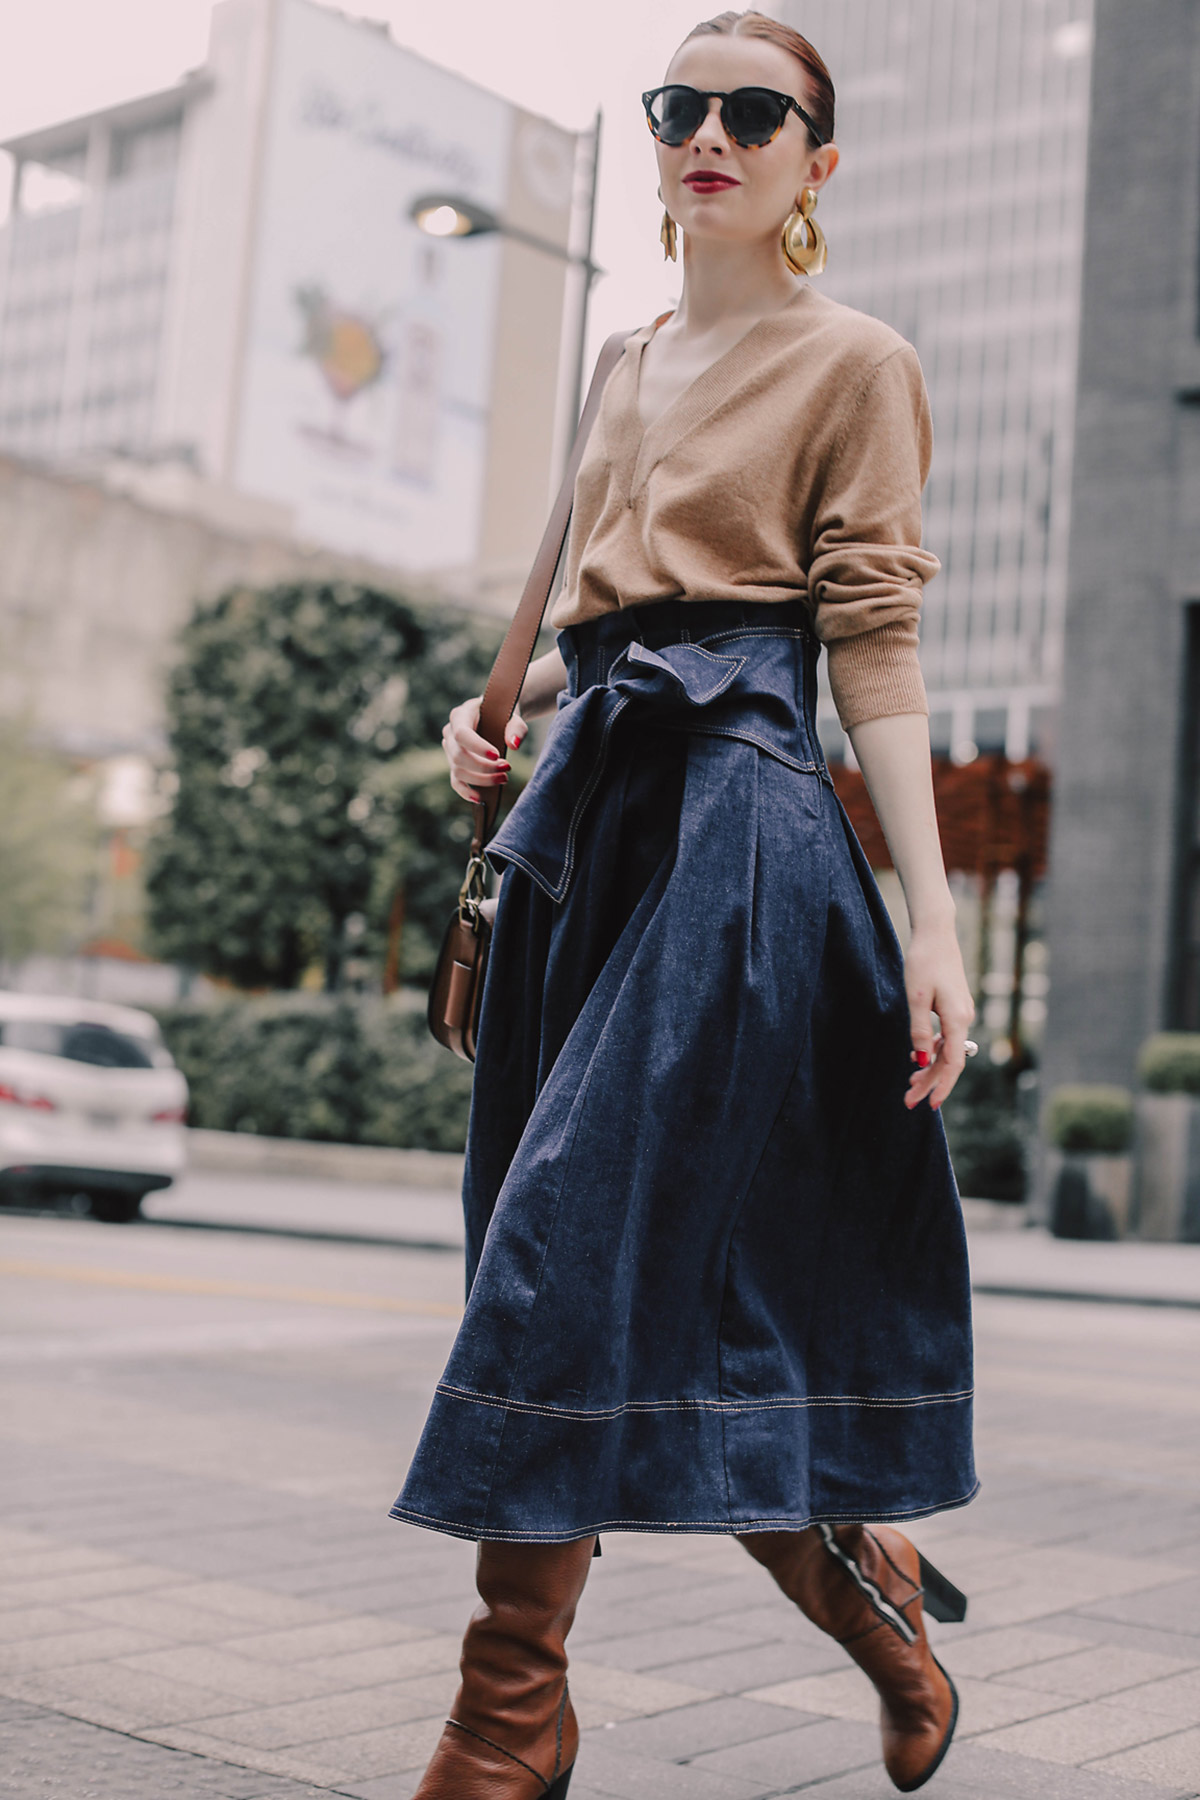 ae3003f04b I fell hard for this denim tie waist Ulla Johnson skirt when I first saw  it. It s a very fresh take on a preppy 70s staple. So chic for fall with a  ...